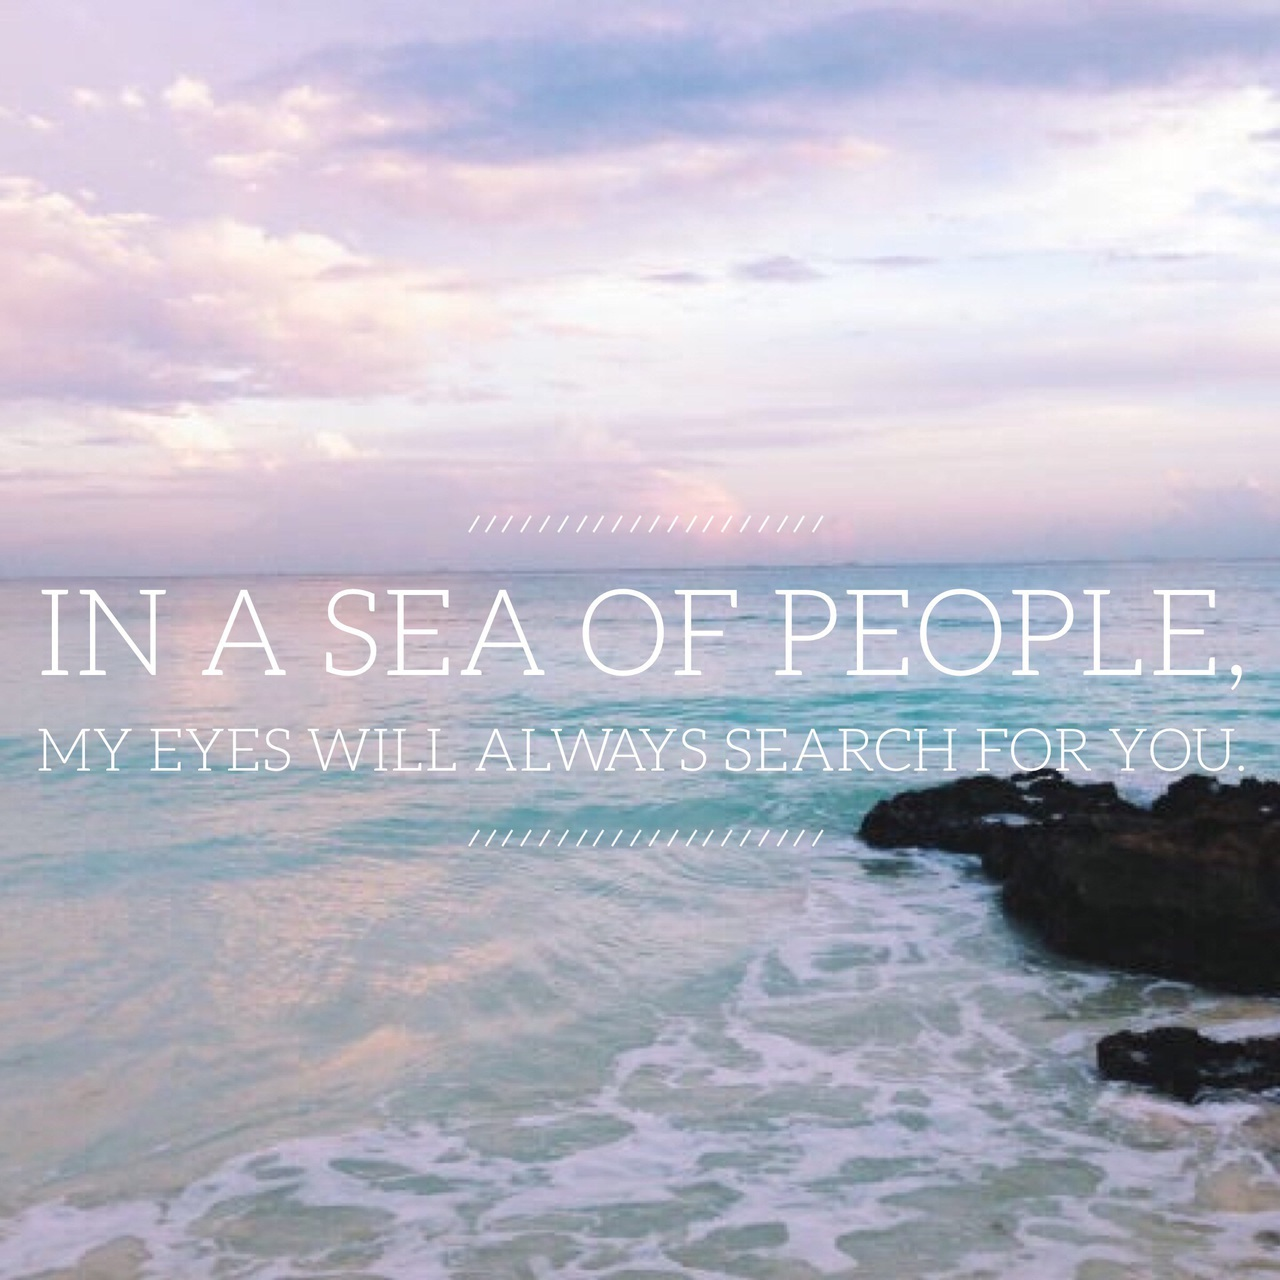 beach, beautiful, besties, clouds, couples, easel, font, love, my eyes, nature, ocean, pastels, people, phrases, qotd, quotes, relationships, sayings, scenic, sea, search, text, typography, views, wallpaper, waves, words, you, easel app, made with easel